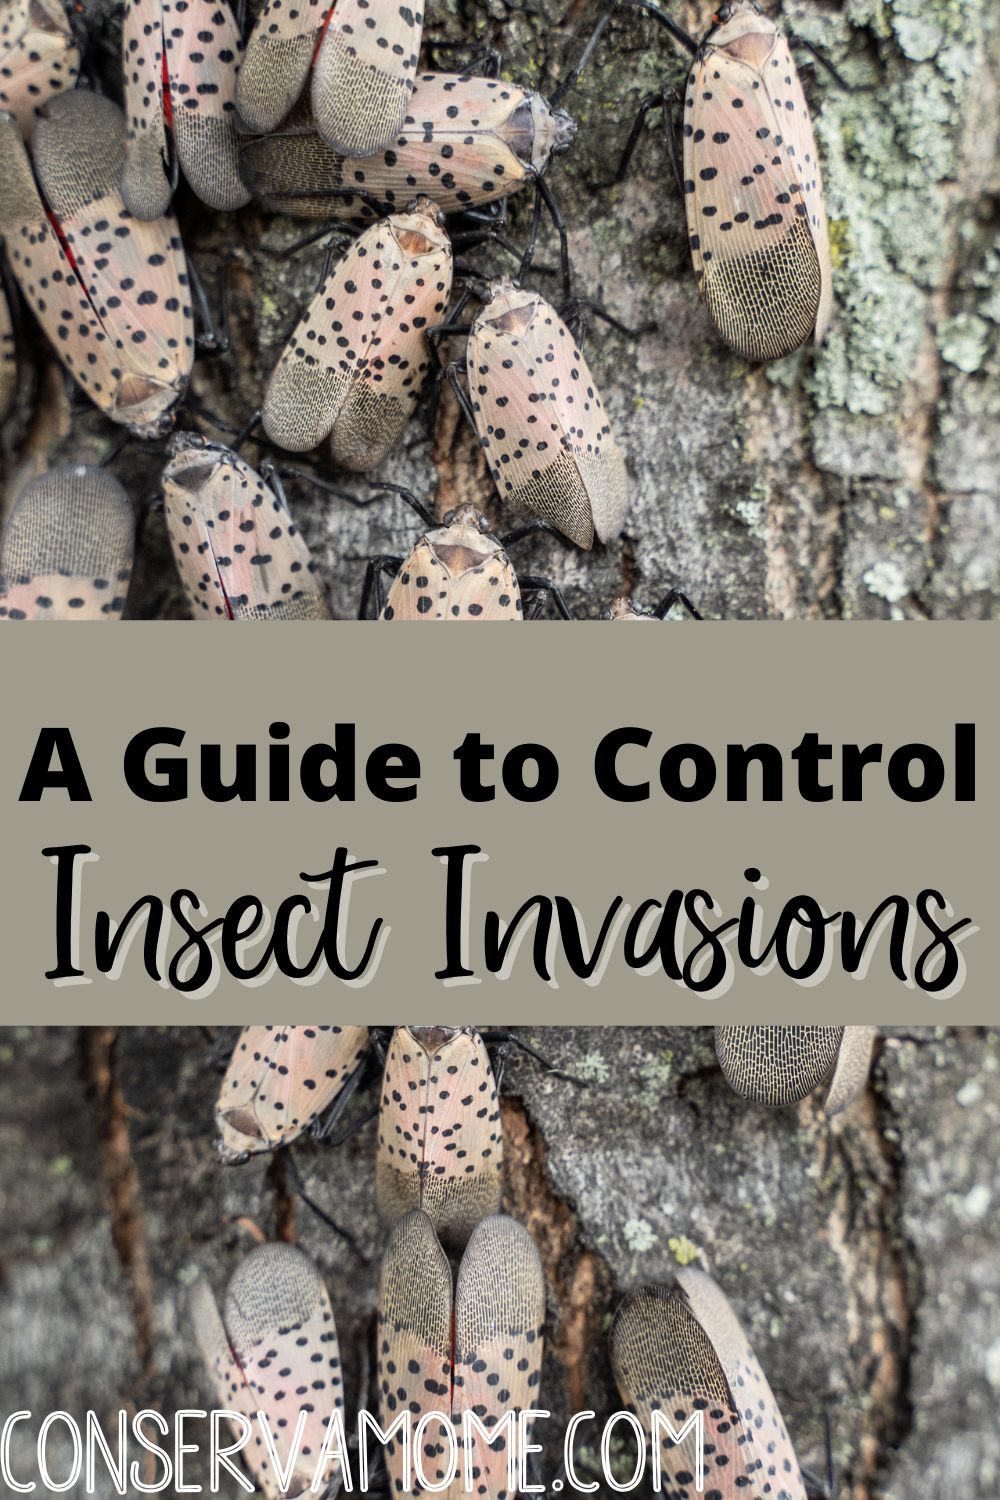 A Guide to Control insect invasions